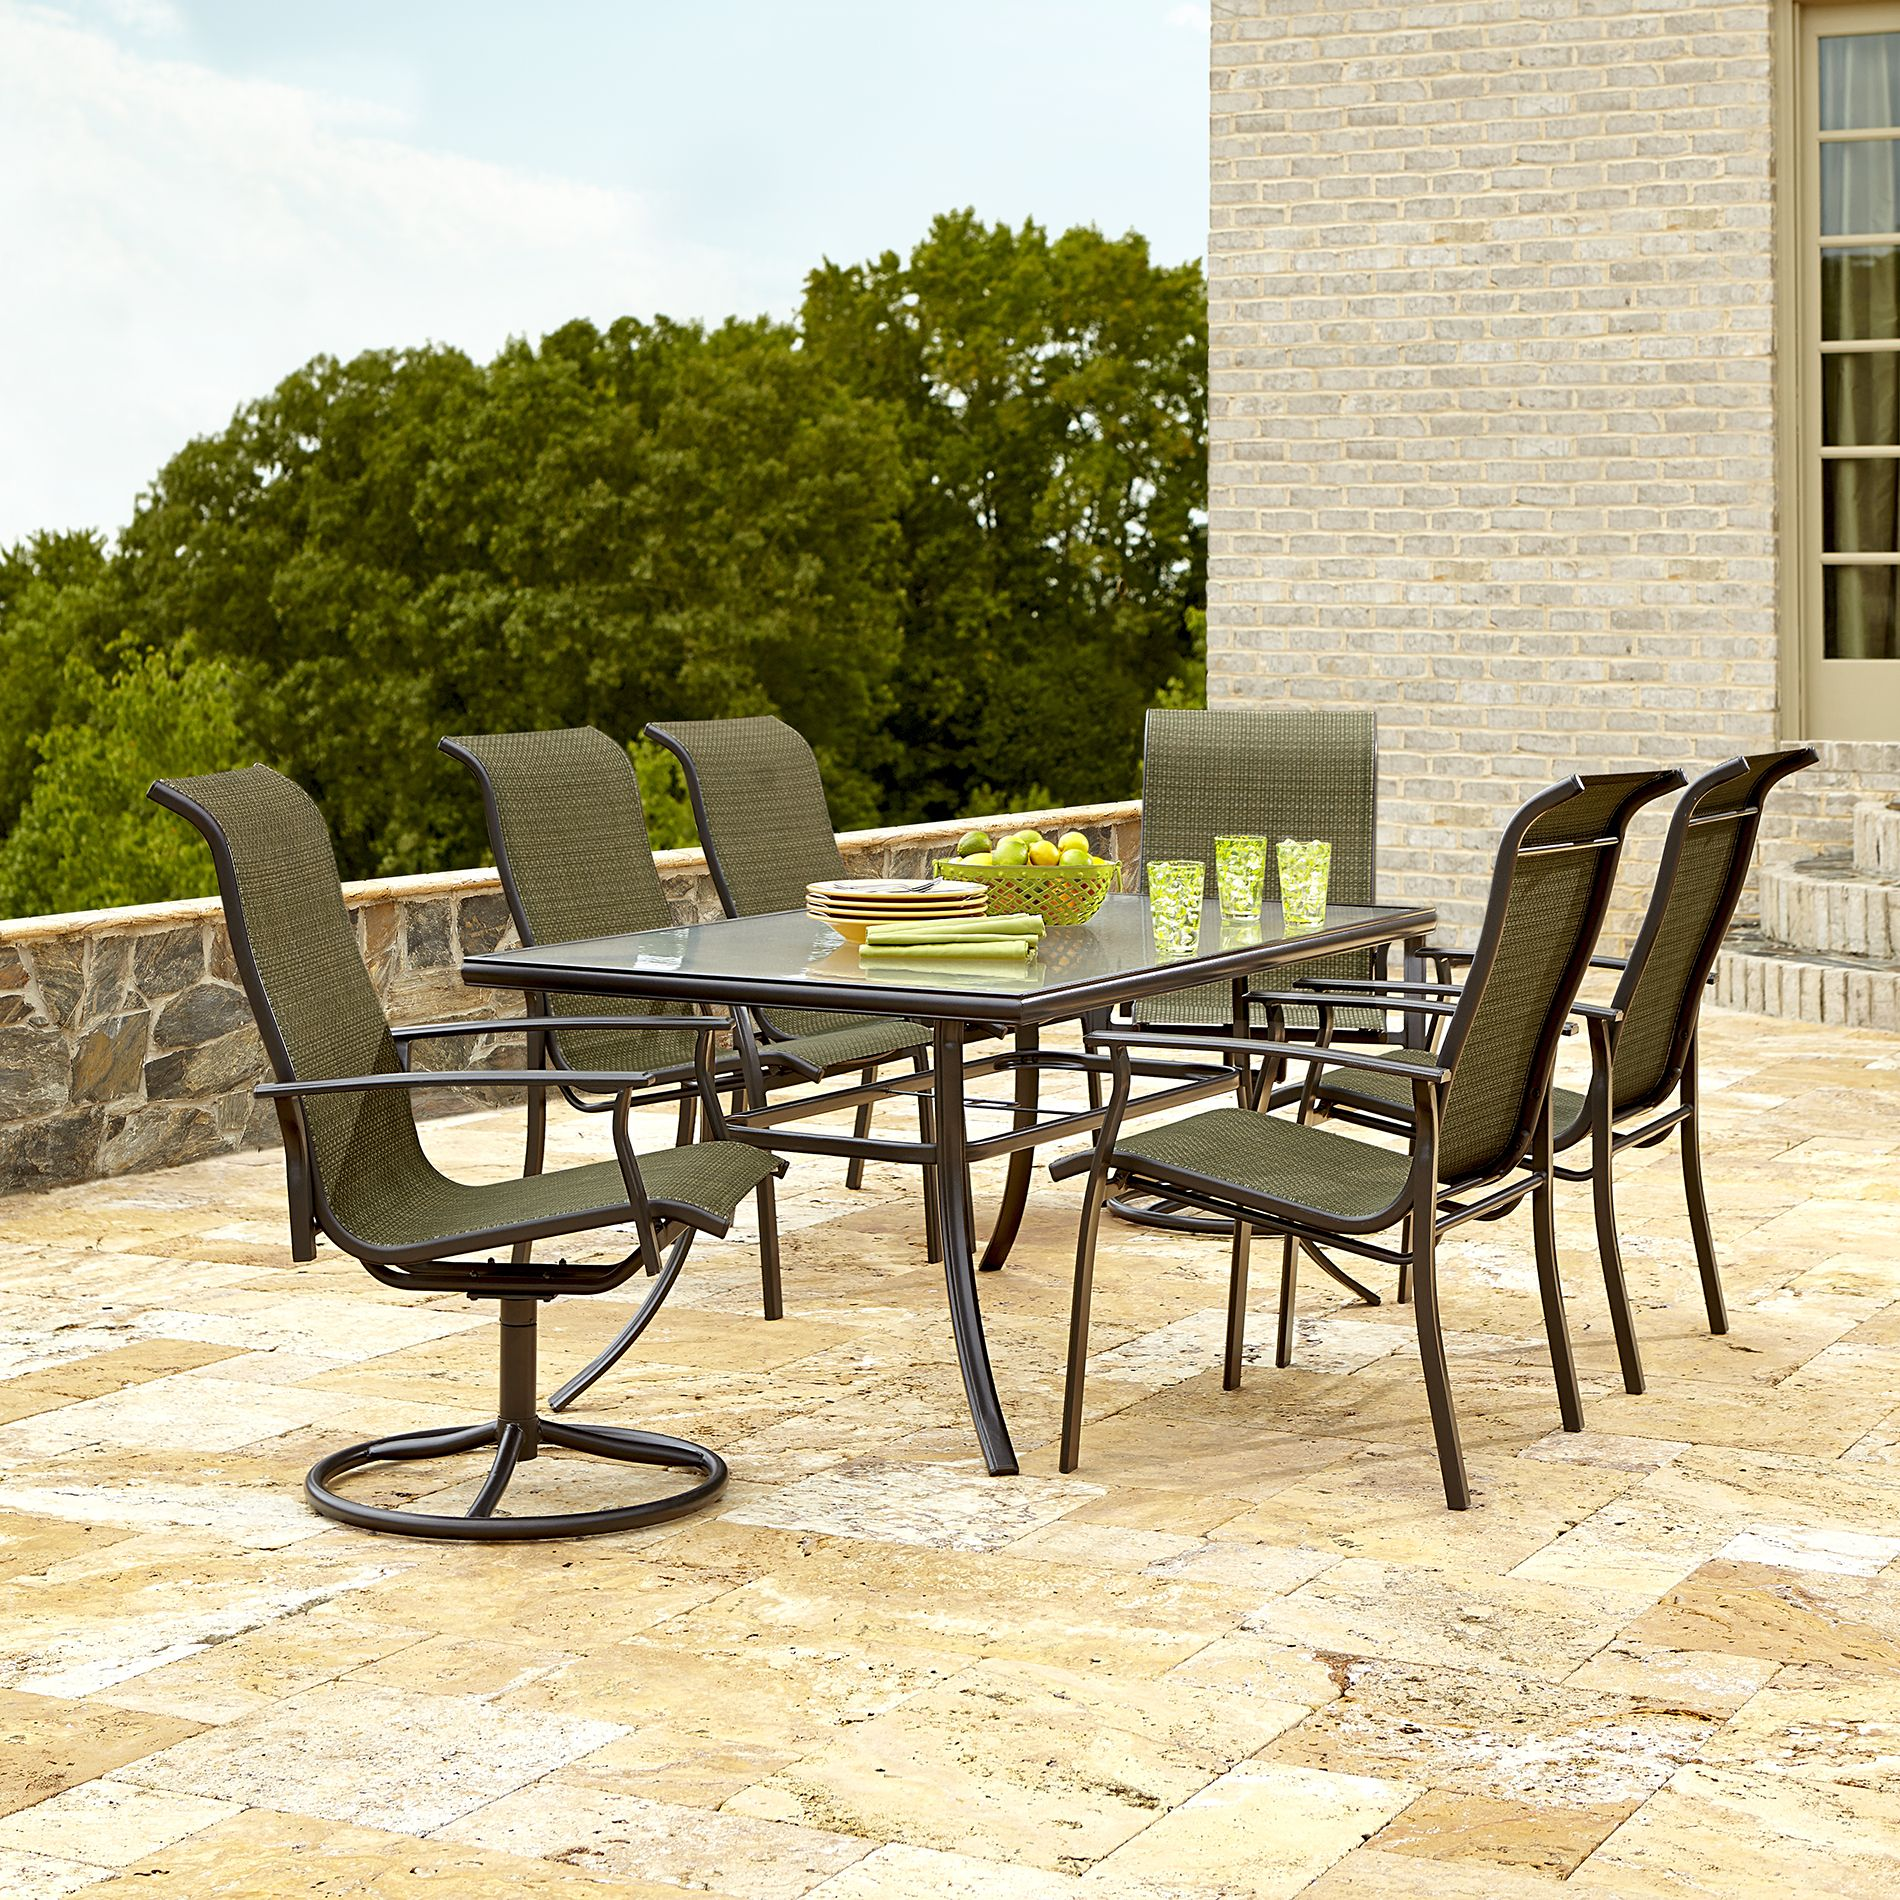 Escape To The Great Outdoors With Garden Oasis Harrison Outdoor Dining Set